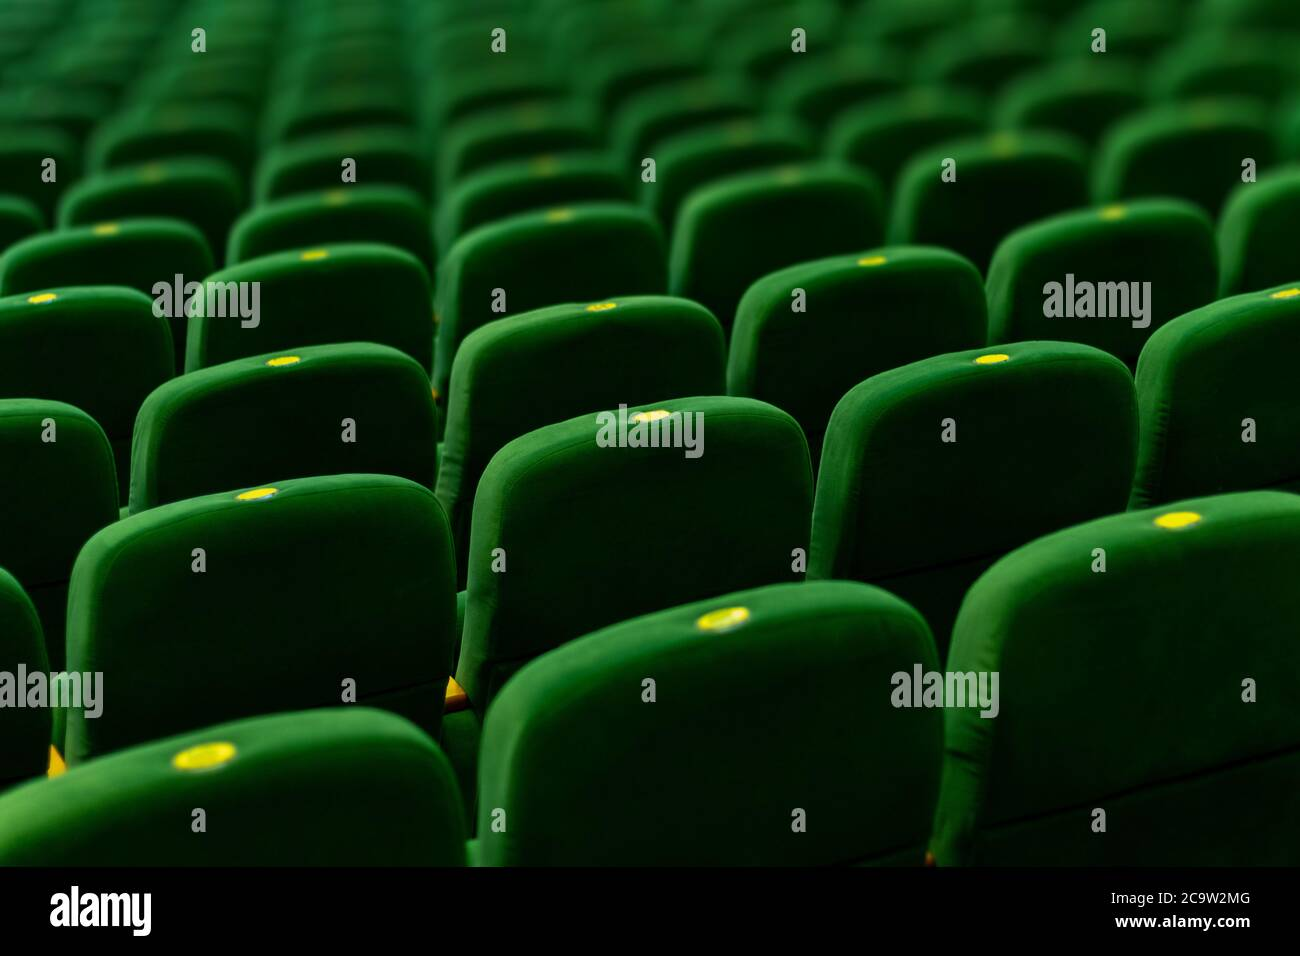 Green soft velvet chairs in the theater concert hall. Texture background for design. Stock Photo